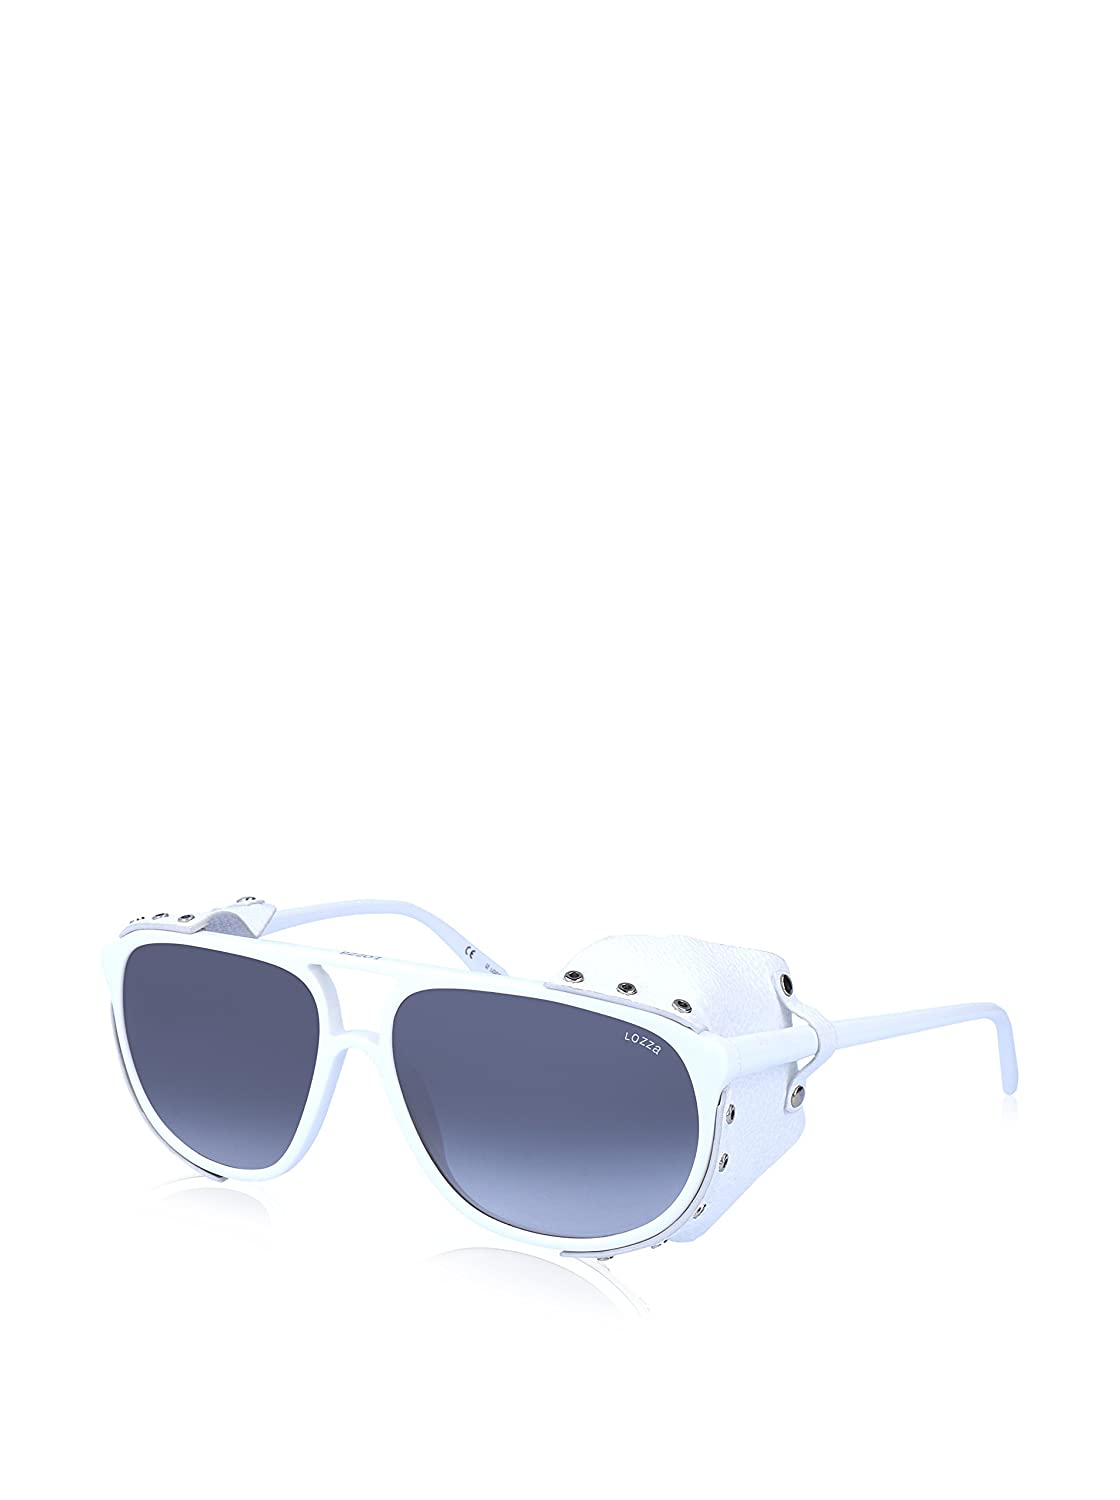 Lozza Gafas de Sol SL1827W (58 mm) Blanco: Amazon.es: Ropa y ...